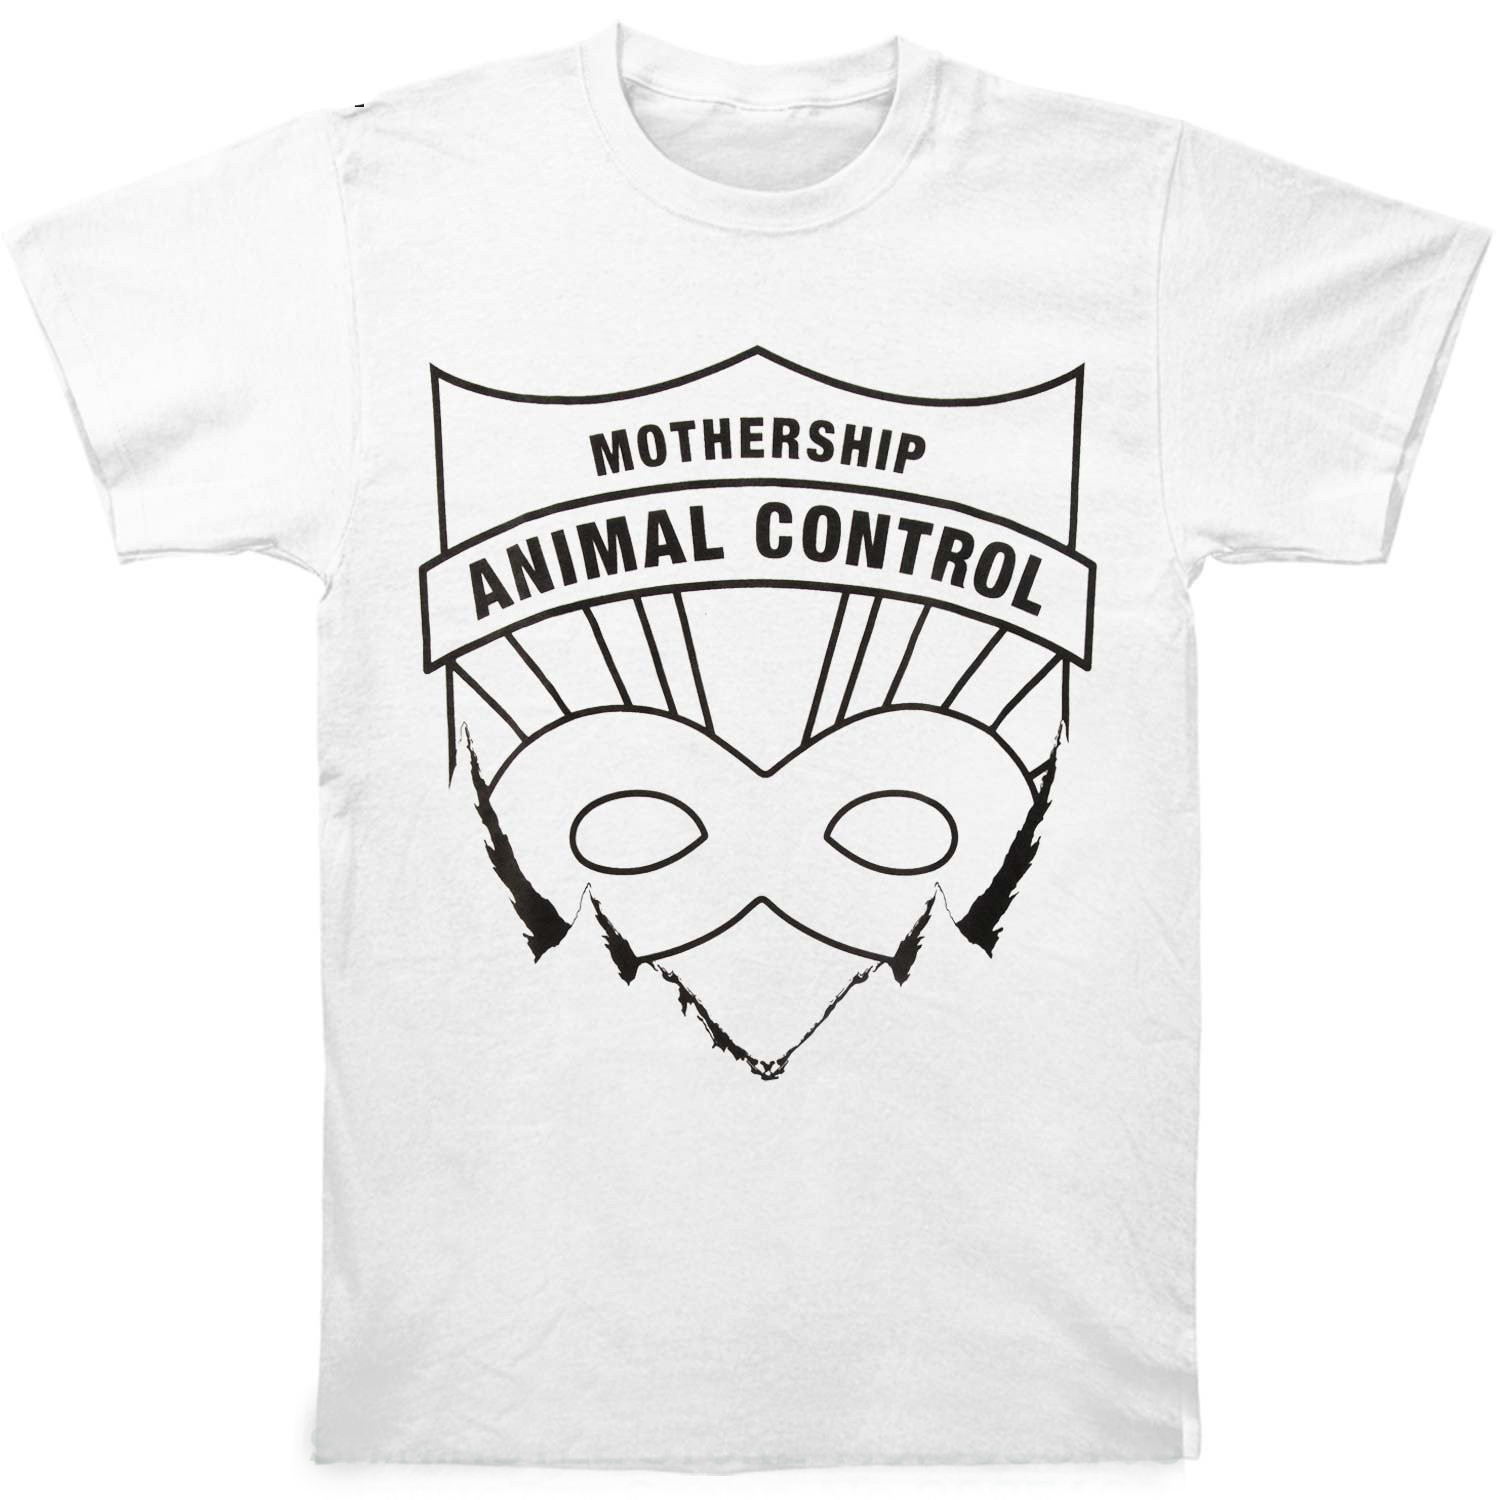 T shirt brand fitness body building dance gavin dance mens animal control in t shirts from mens clothing accessories on aliexpress com alibaba group